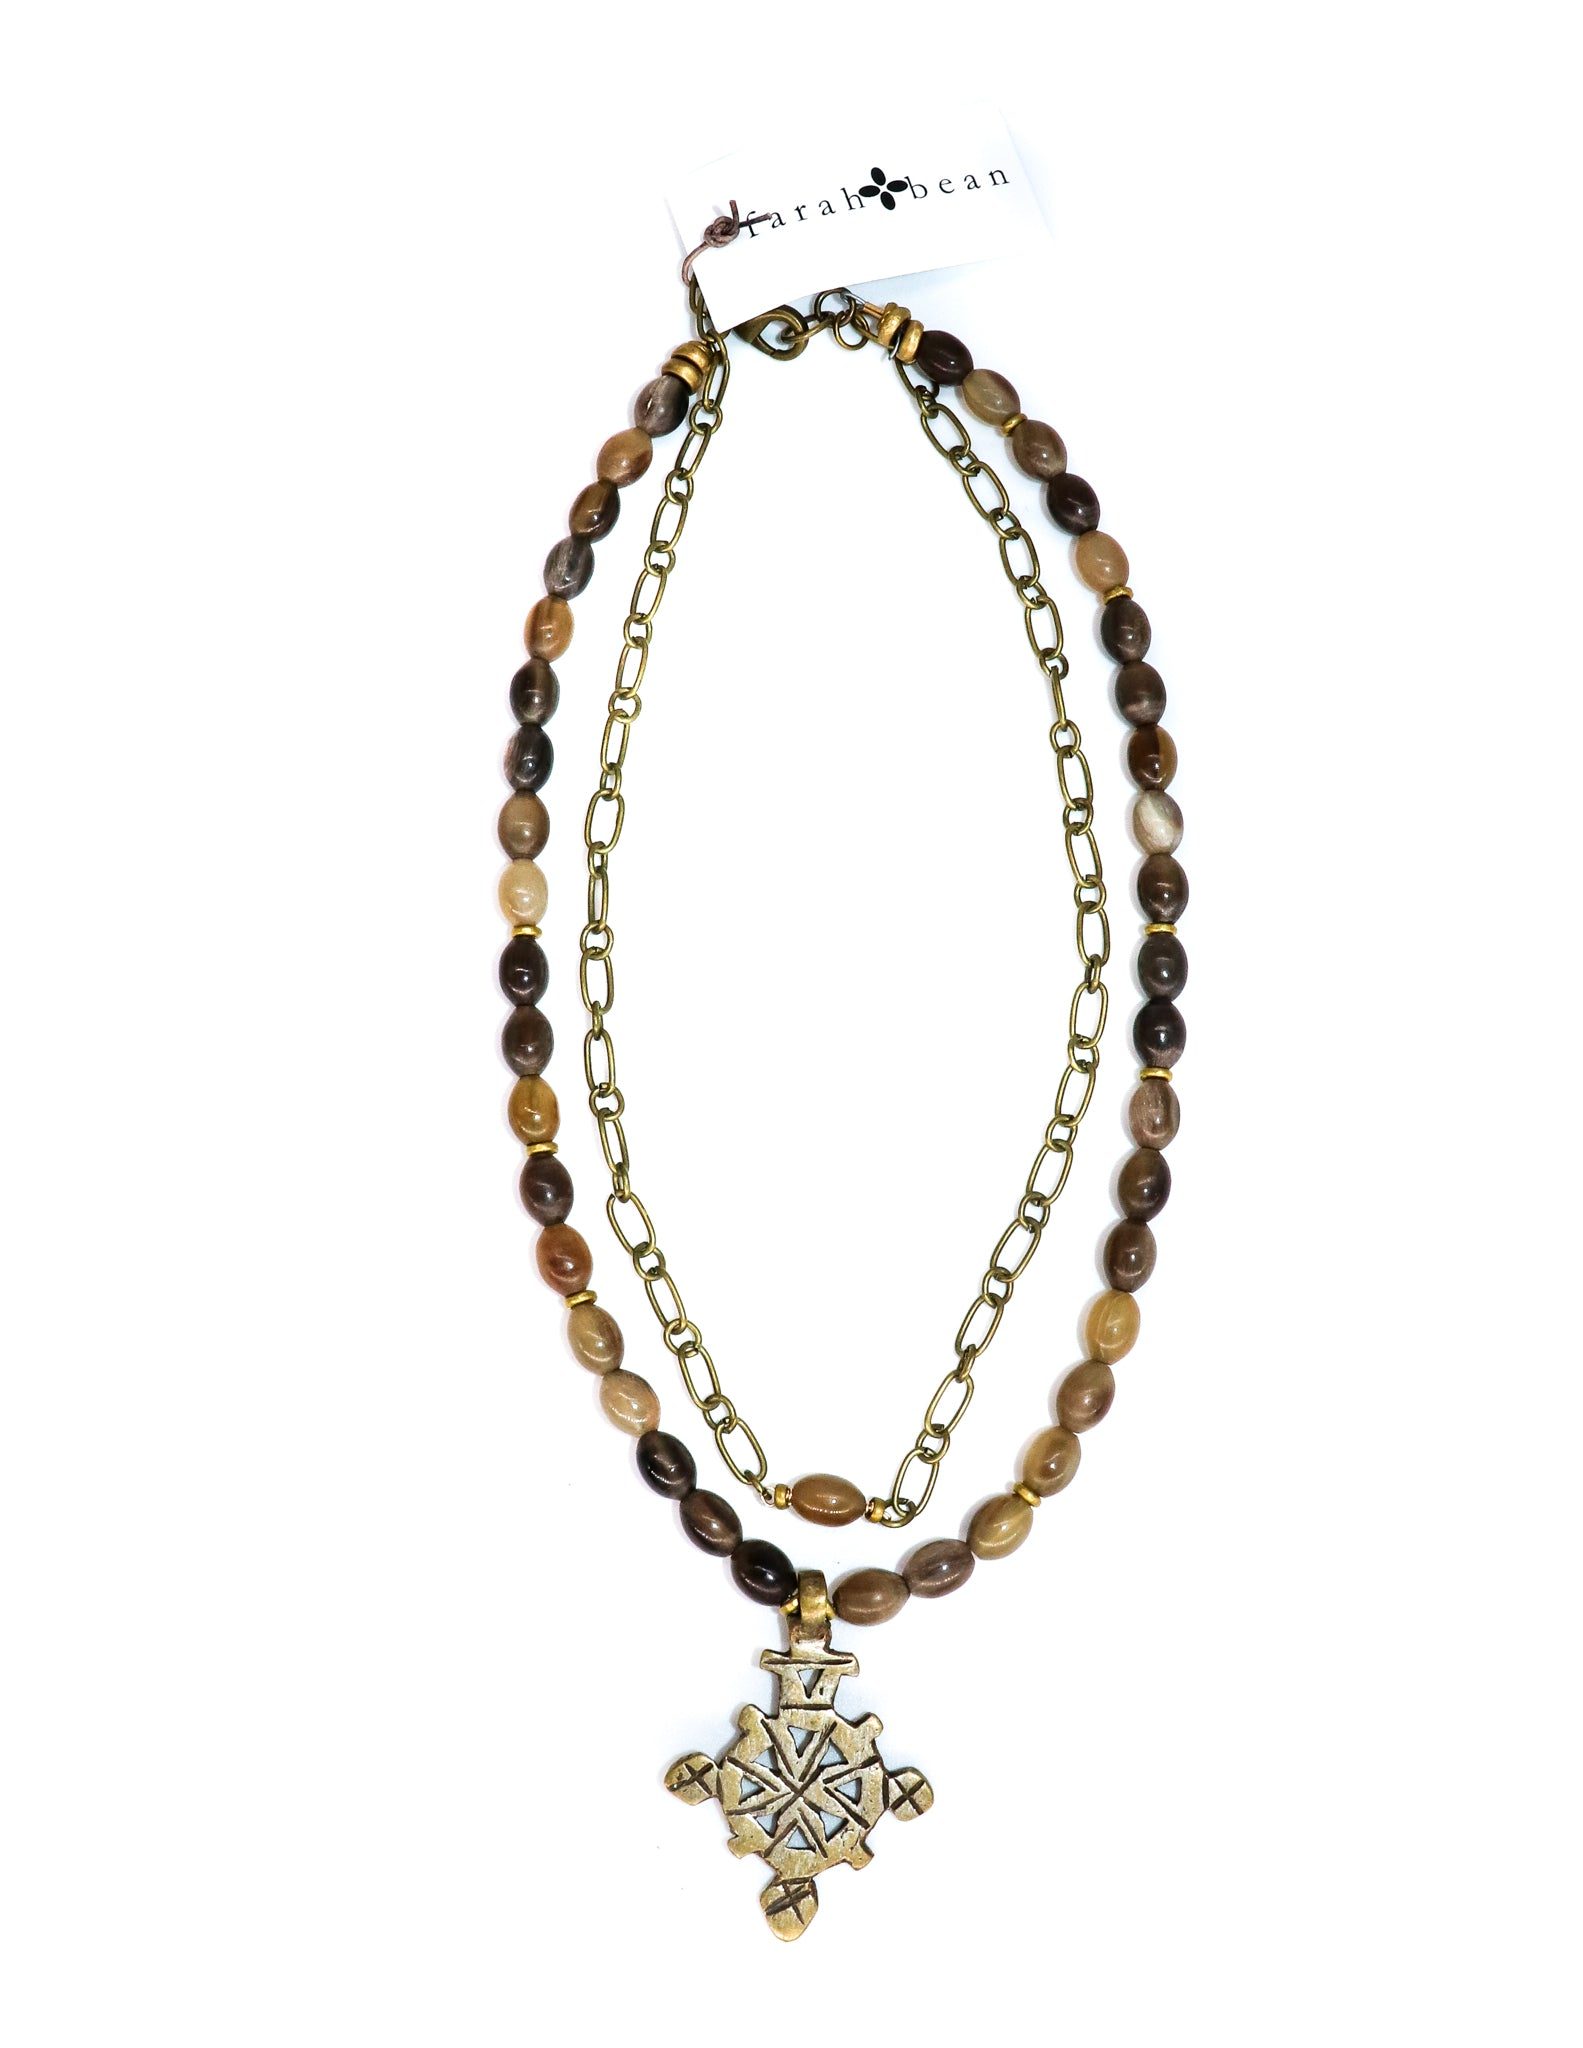 Horn necklace with Ethiopian cross